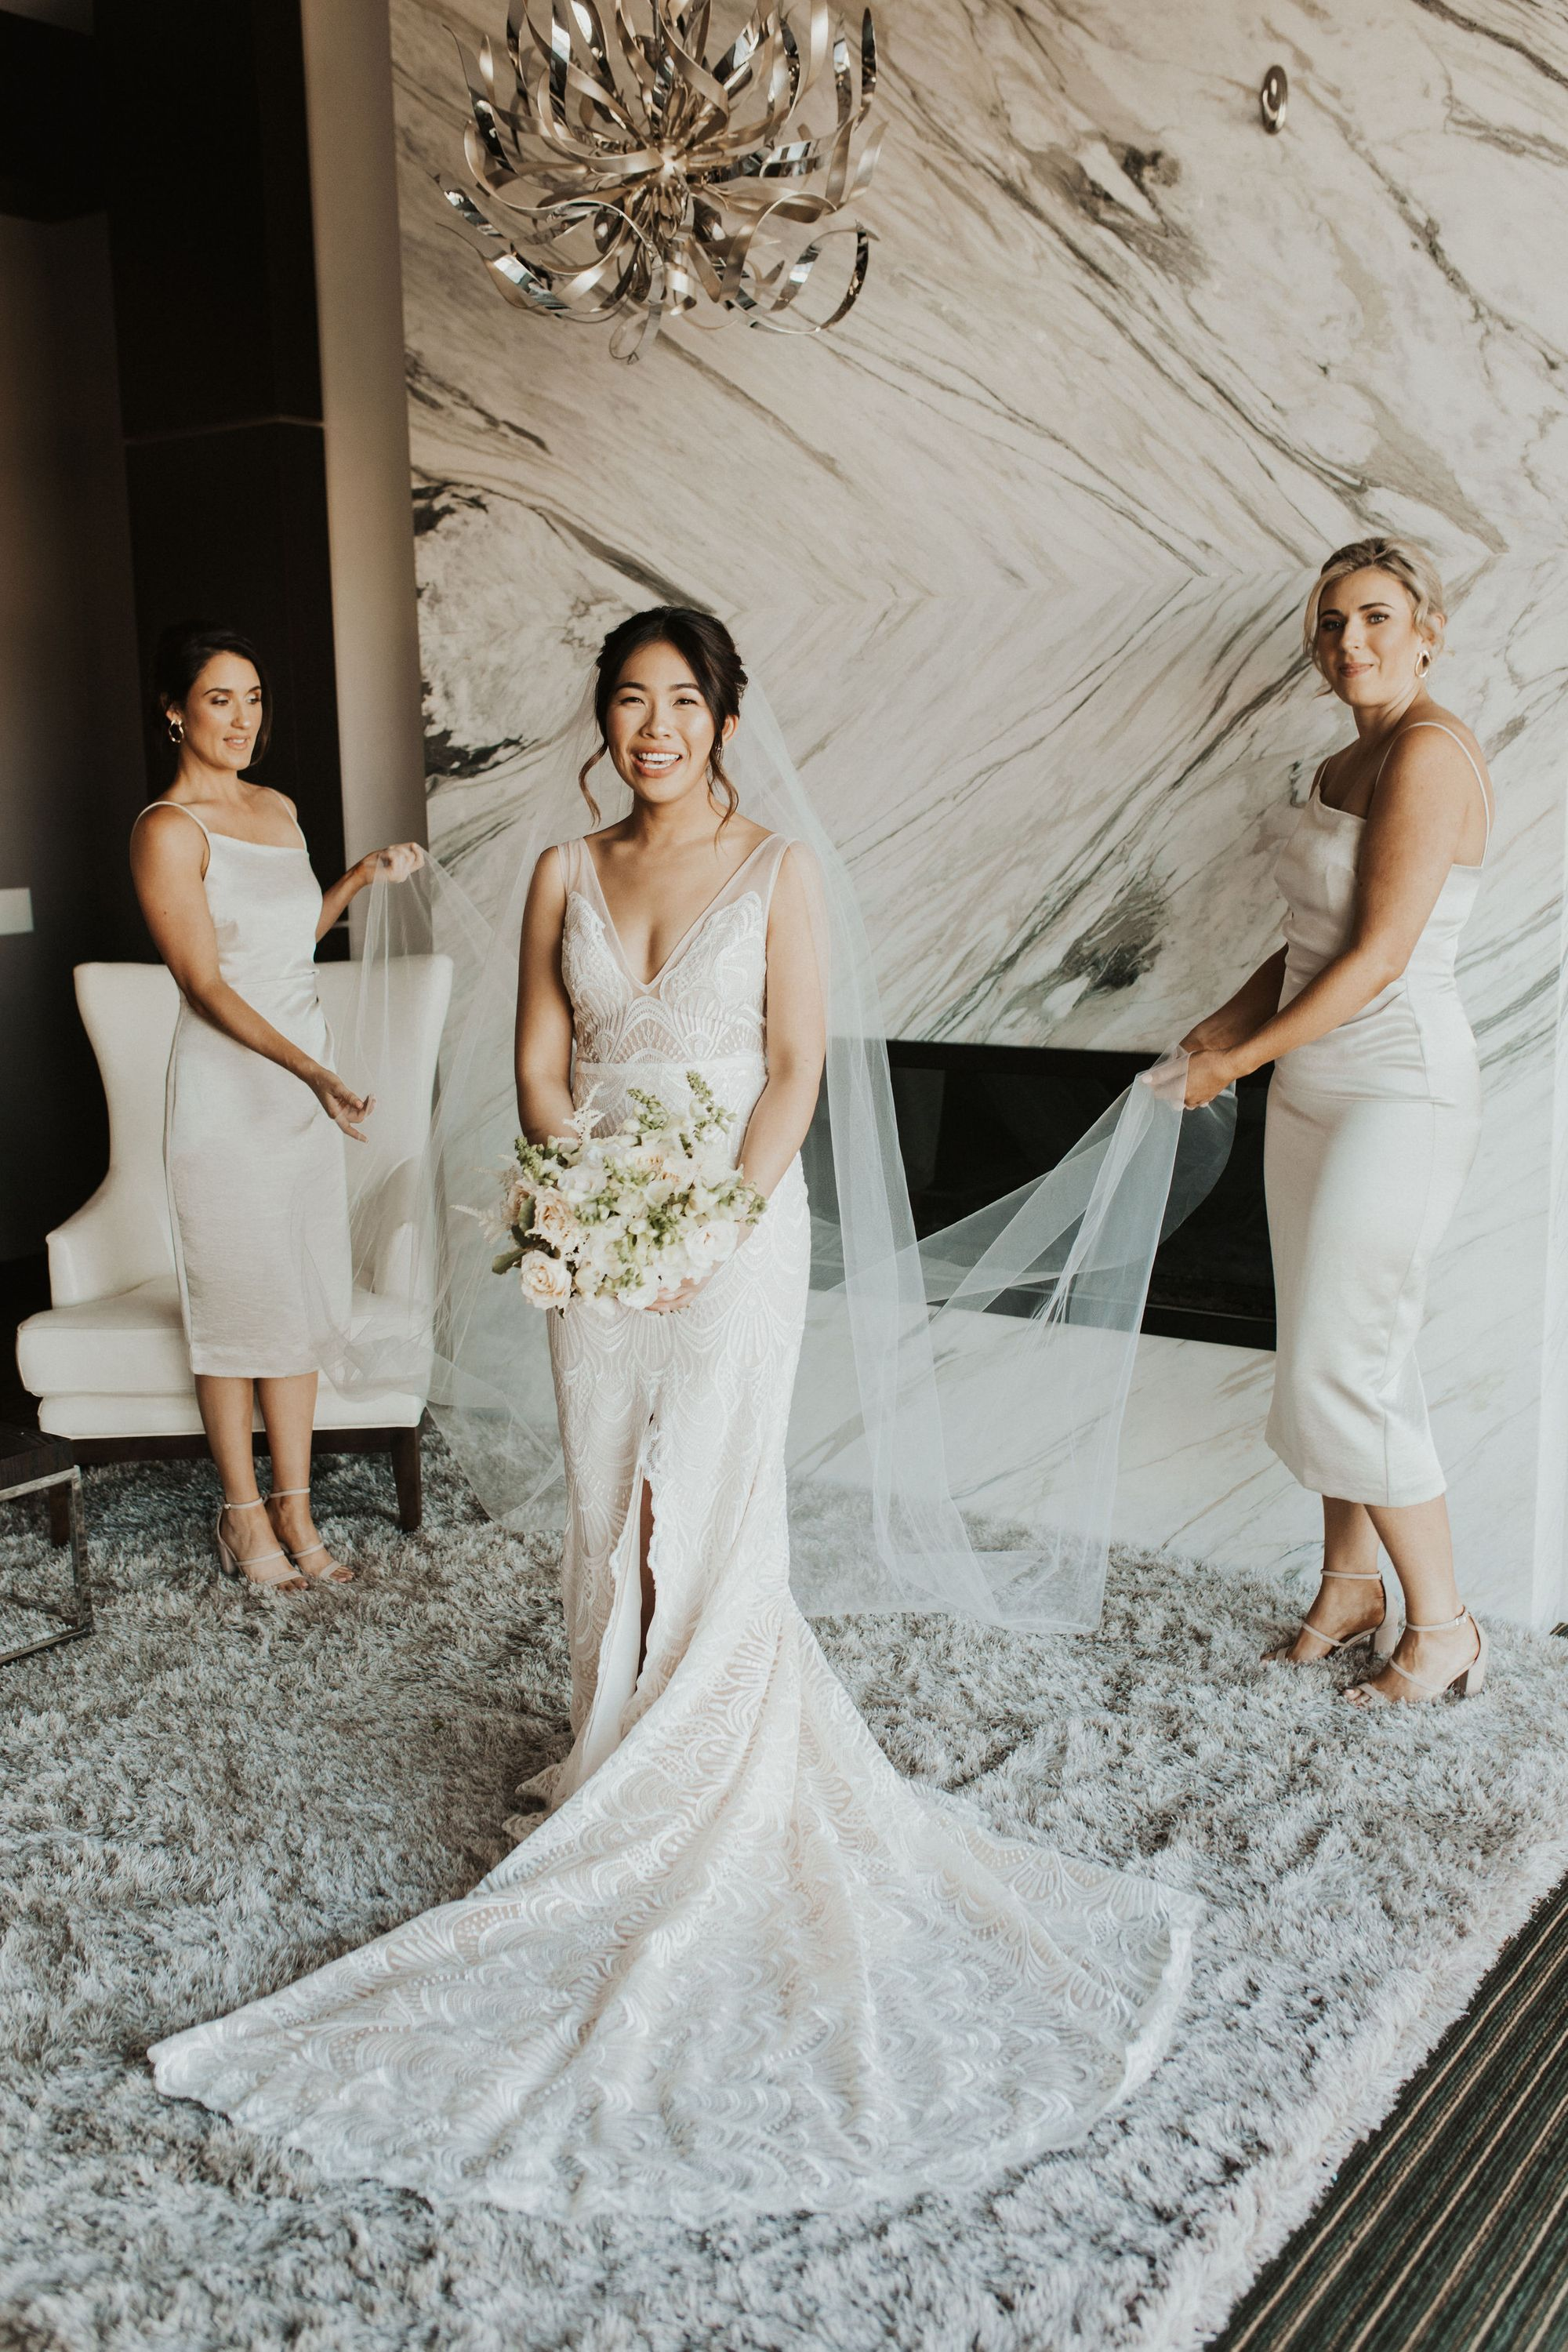 We Love Love Love This White On White Bridal Party Look So Chic